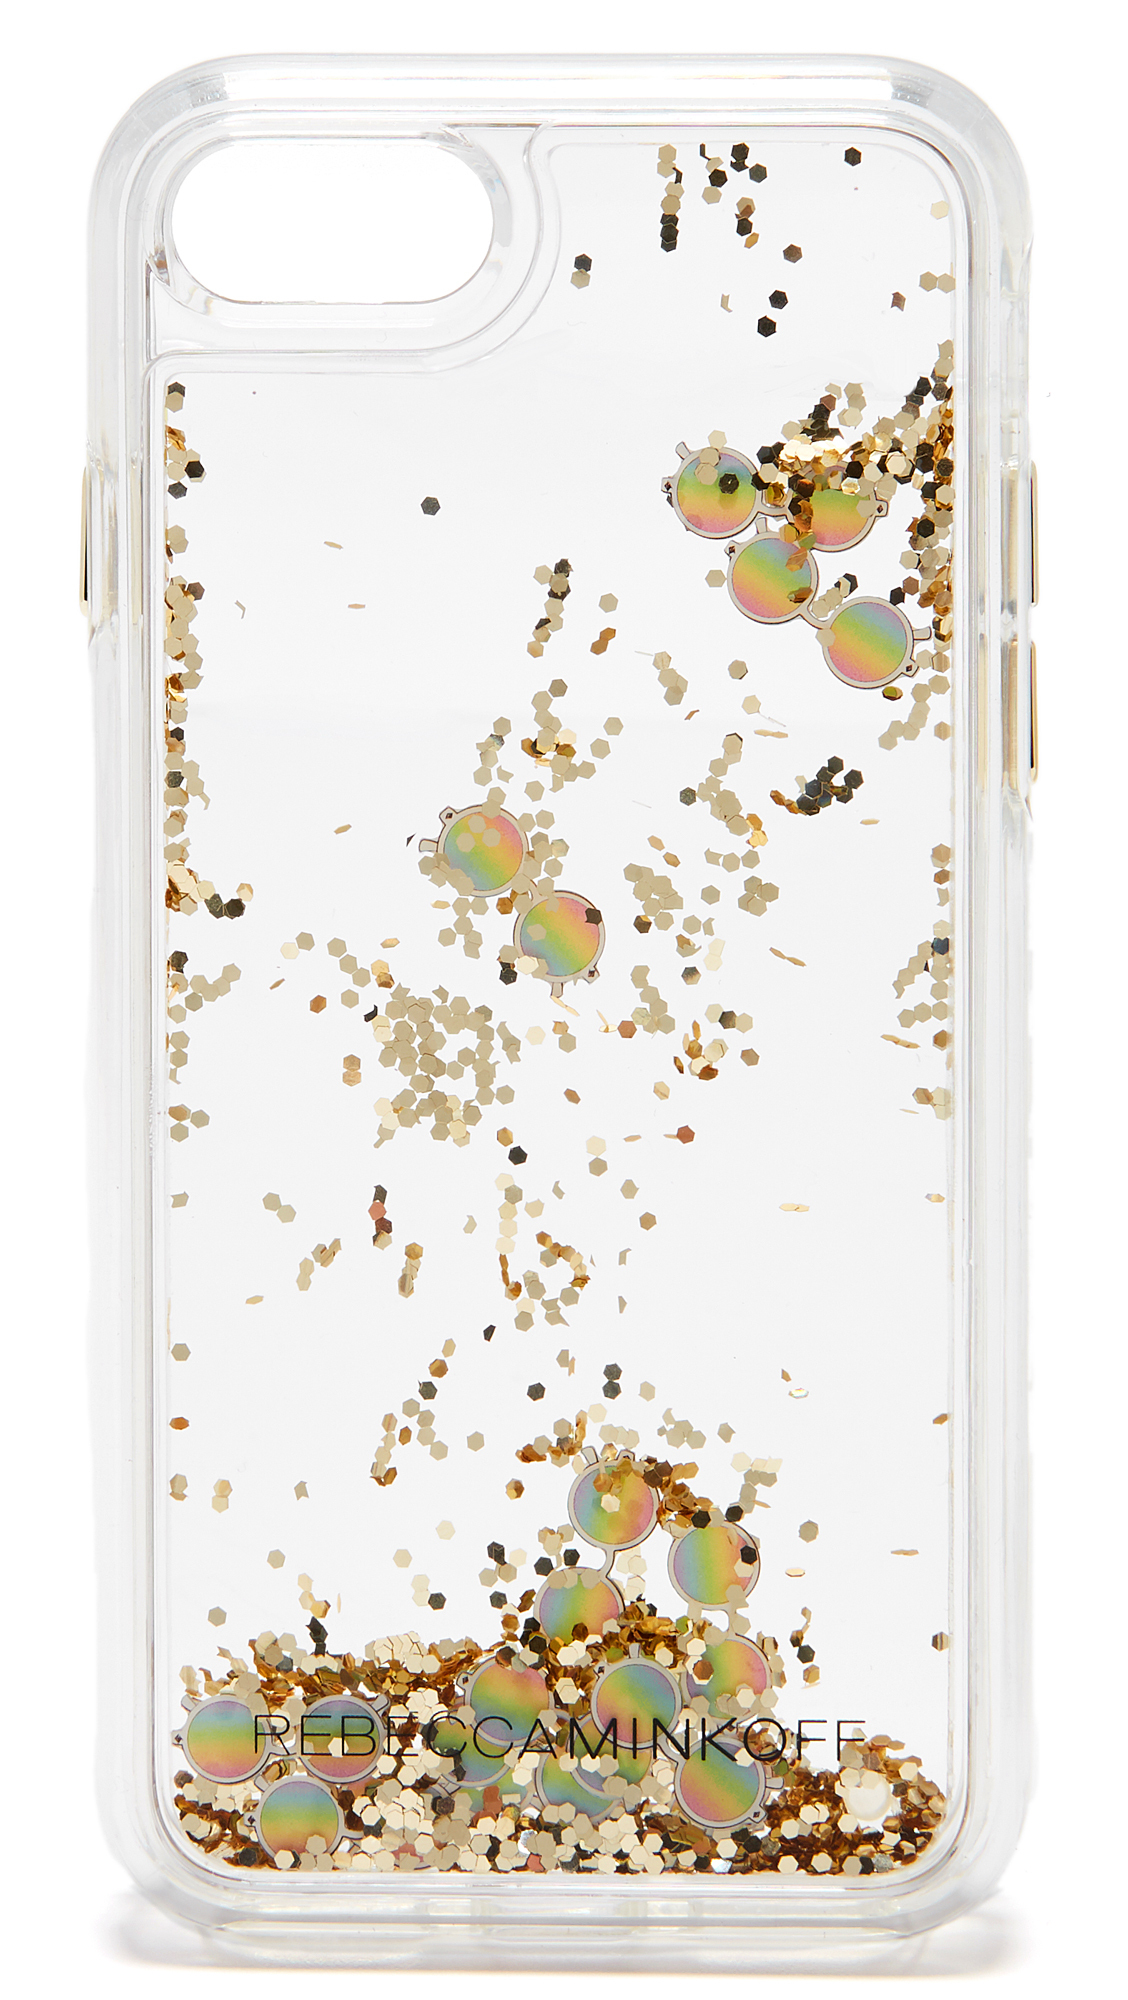 送料・関税込み!!Mini Sunnies Glitterfall iP iphone ケース